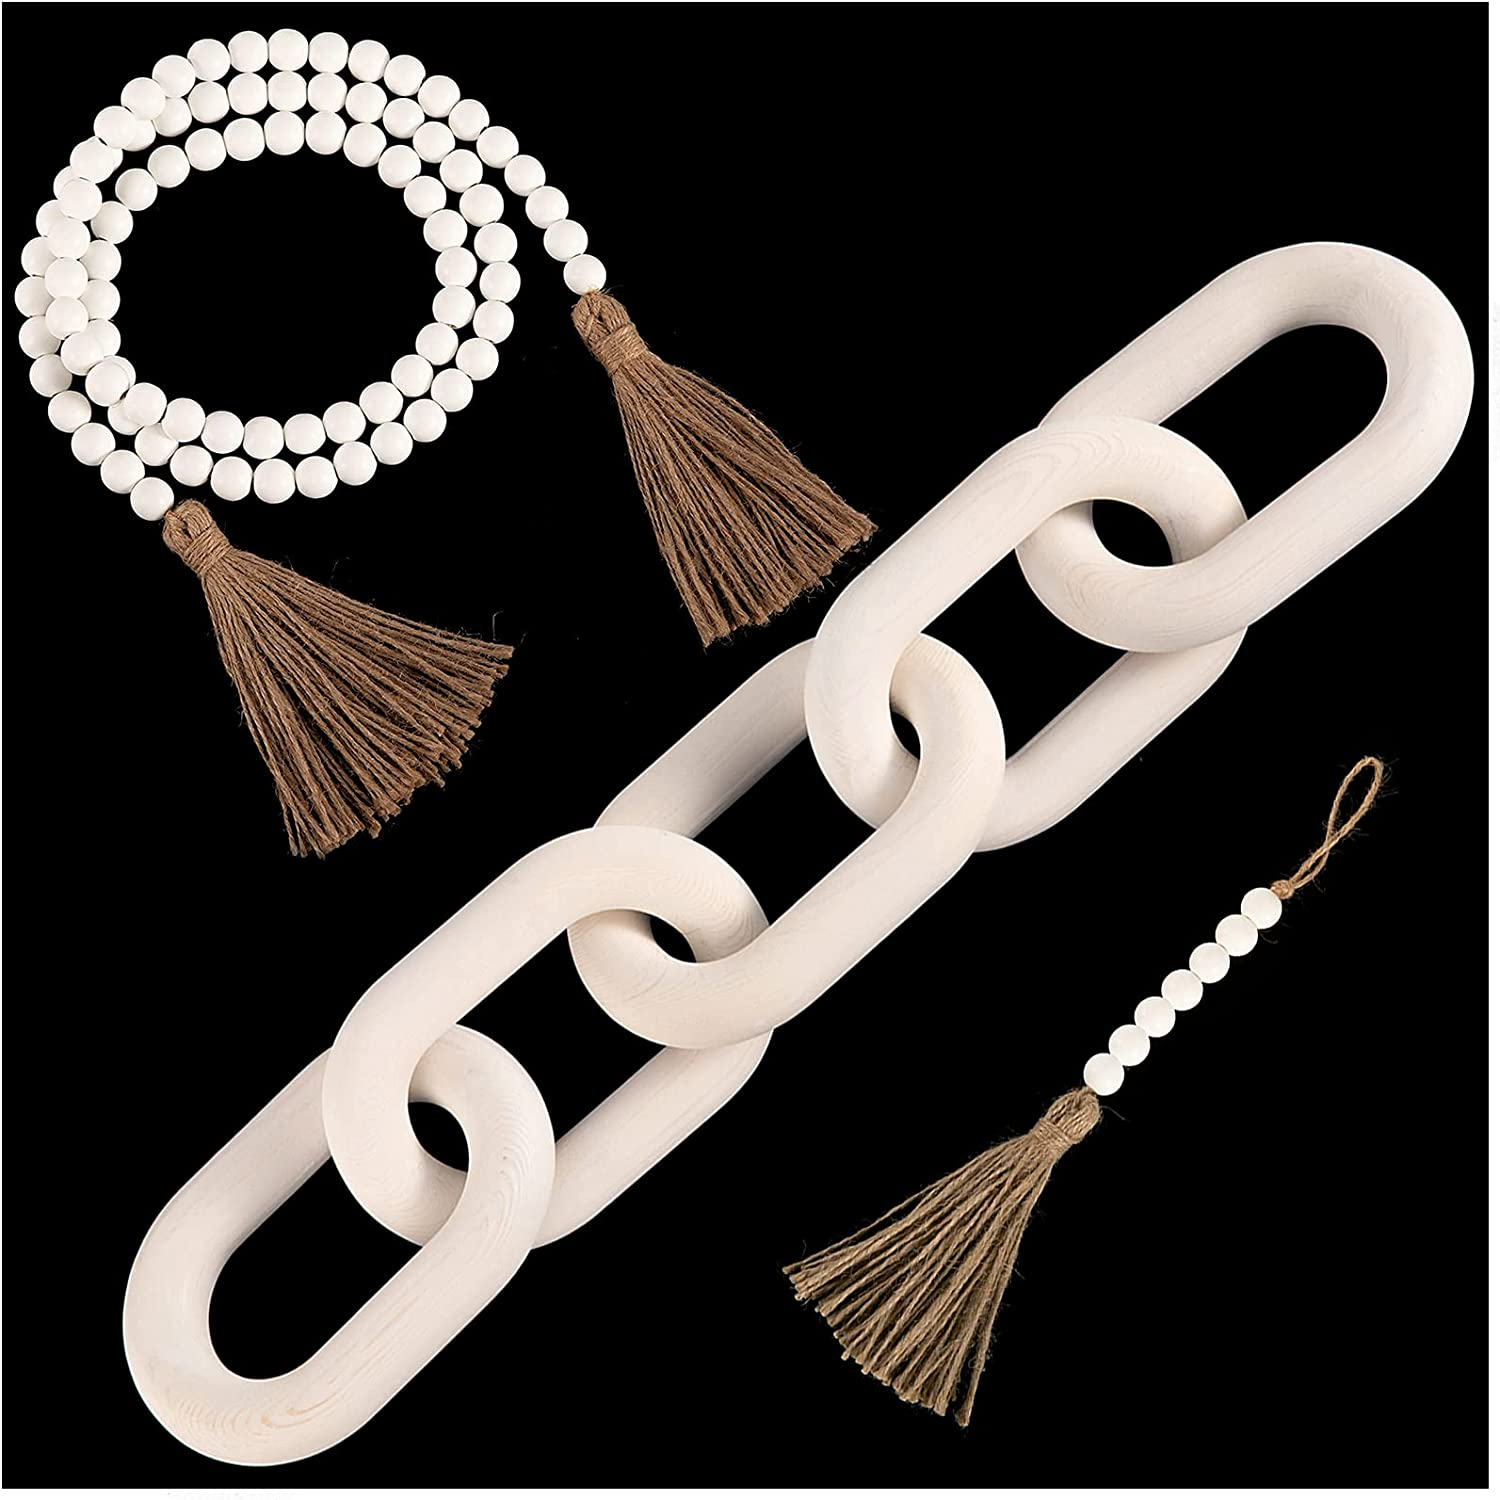 3 Pack Decorative Wooden Link Chain Bead Garland Set- Handmade 5-Link Pinewood Chain+ 2pcs Hand Carved Bead Garland with Tassel Modern Aesthetic Hanging Ornaments for Boho Farmhouse Home Decor(White)